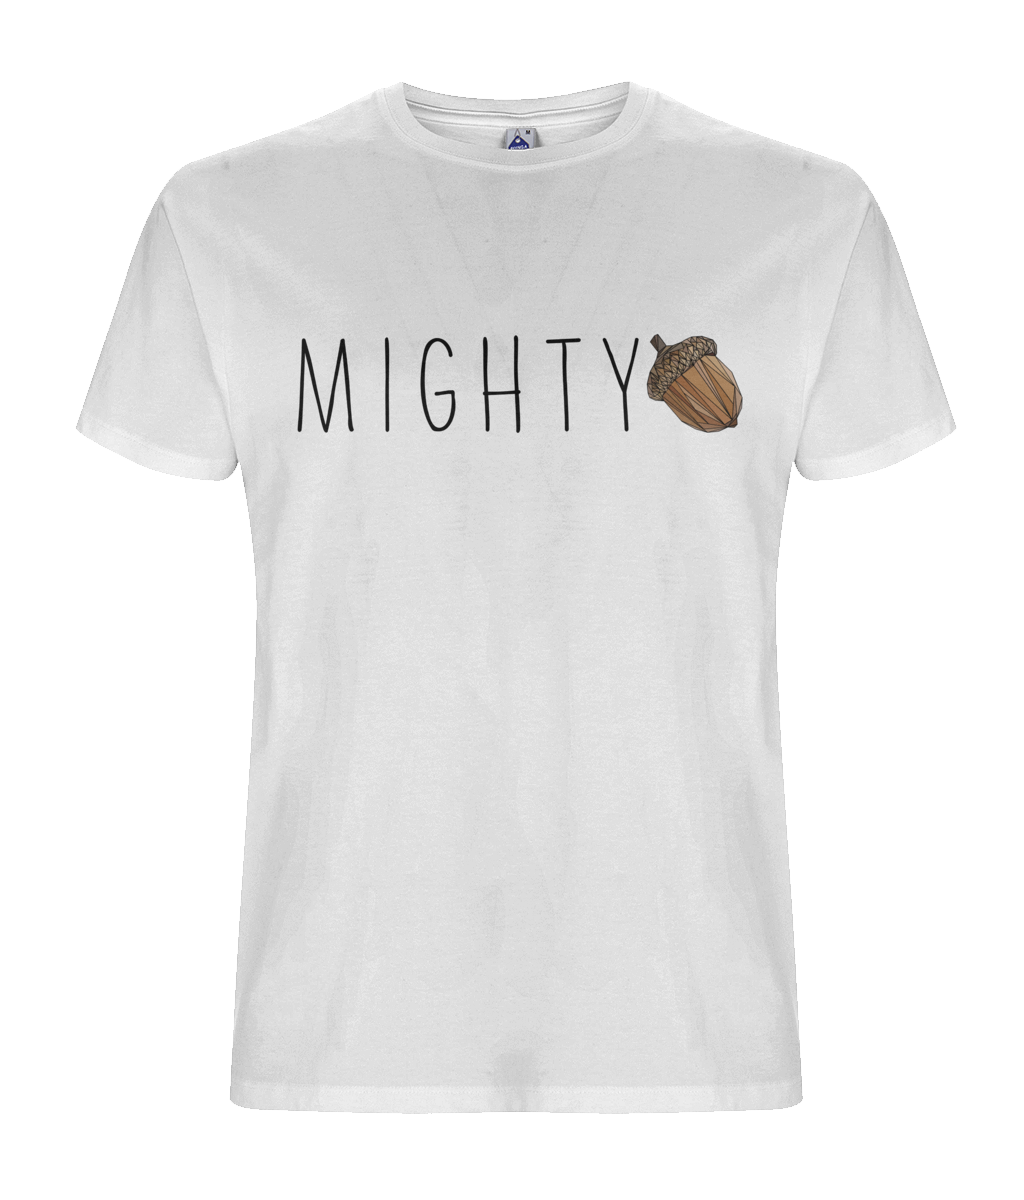 Mighty Men's White Tee